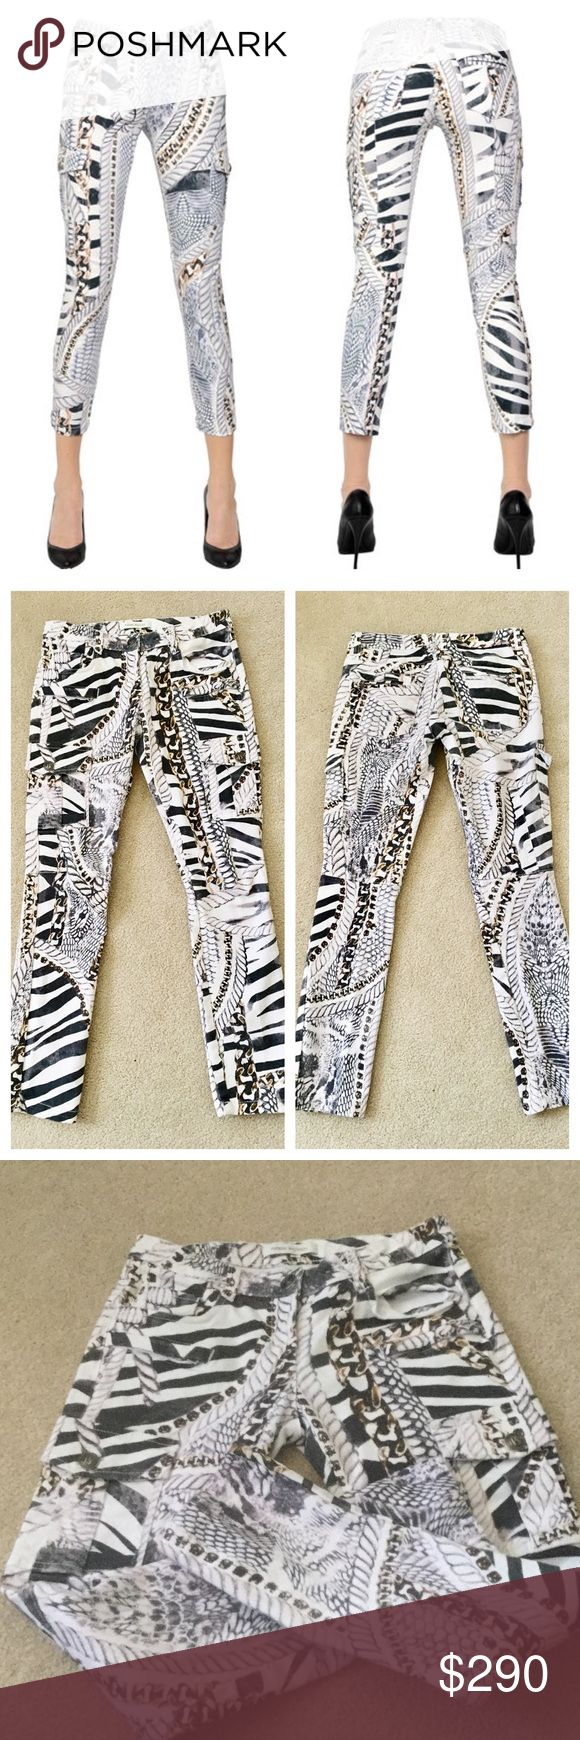 """Pierre Balmain👖Printed White Skinny Jeans Beautiful preloved Balmain (NOT H&M) skinny jeans with two cargo front pockets and two zipper pockets above along with standard 5 pockets, motto like look.  Great stretch, 97% cotton, 3% elastane.  No stains or marks, minimal fading, these are in beautiful condition and are a great addition to any denim lovers closet.  Waist measures 14.26"""" across, low rise 7.5"""", inseam appx 27.5"""", leg opening appx 11.5"""". Features zippered back pockets.  No detail…"""